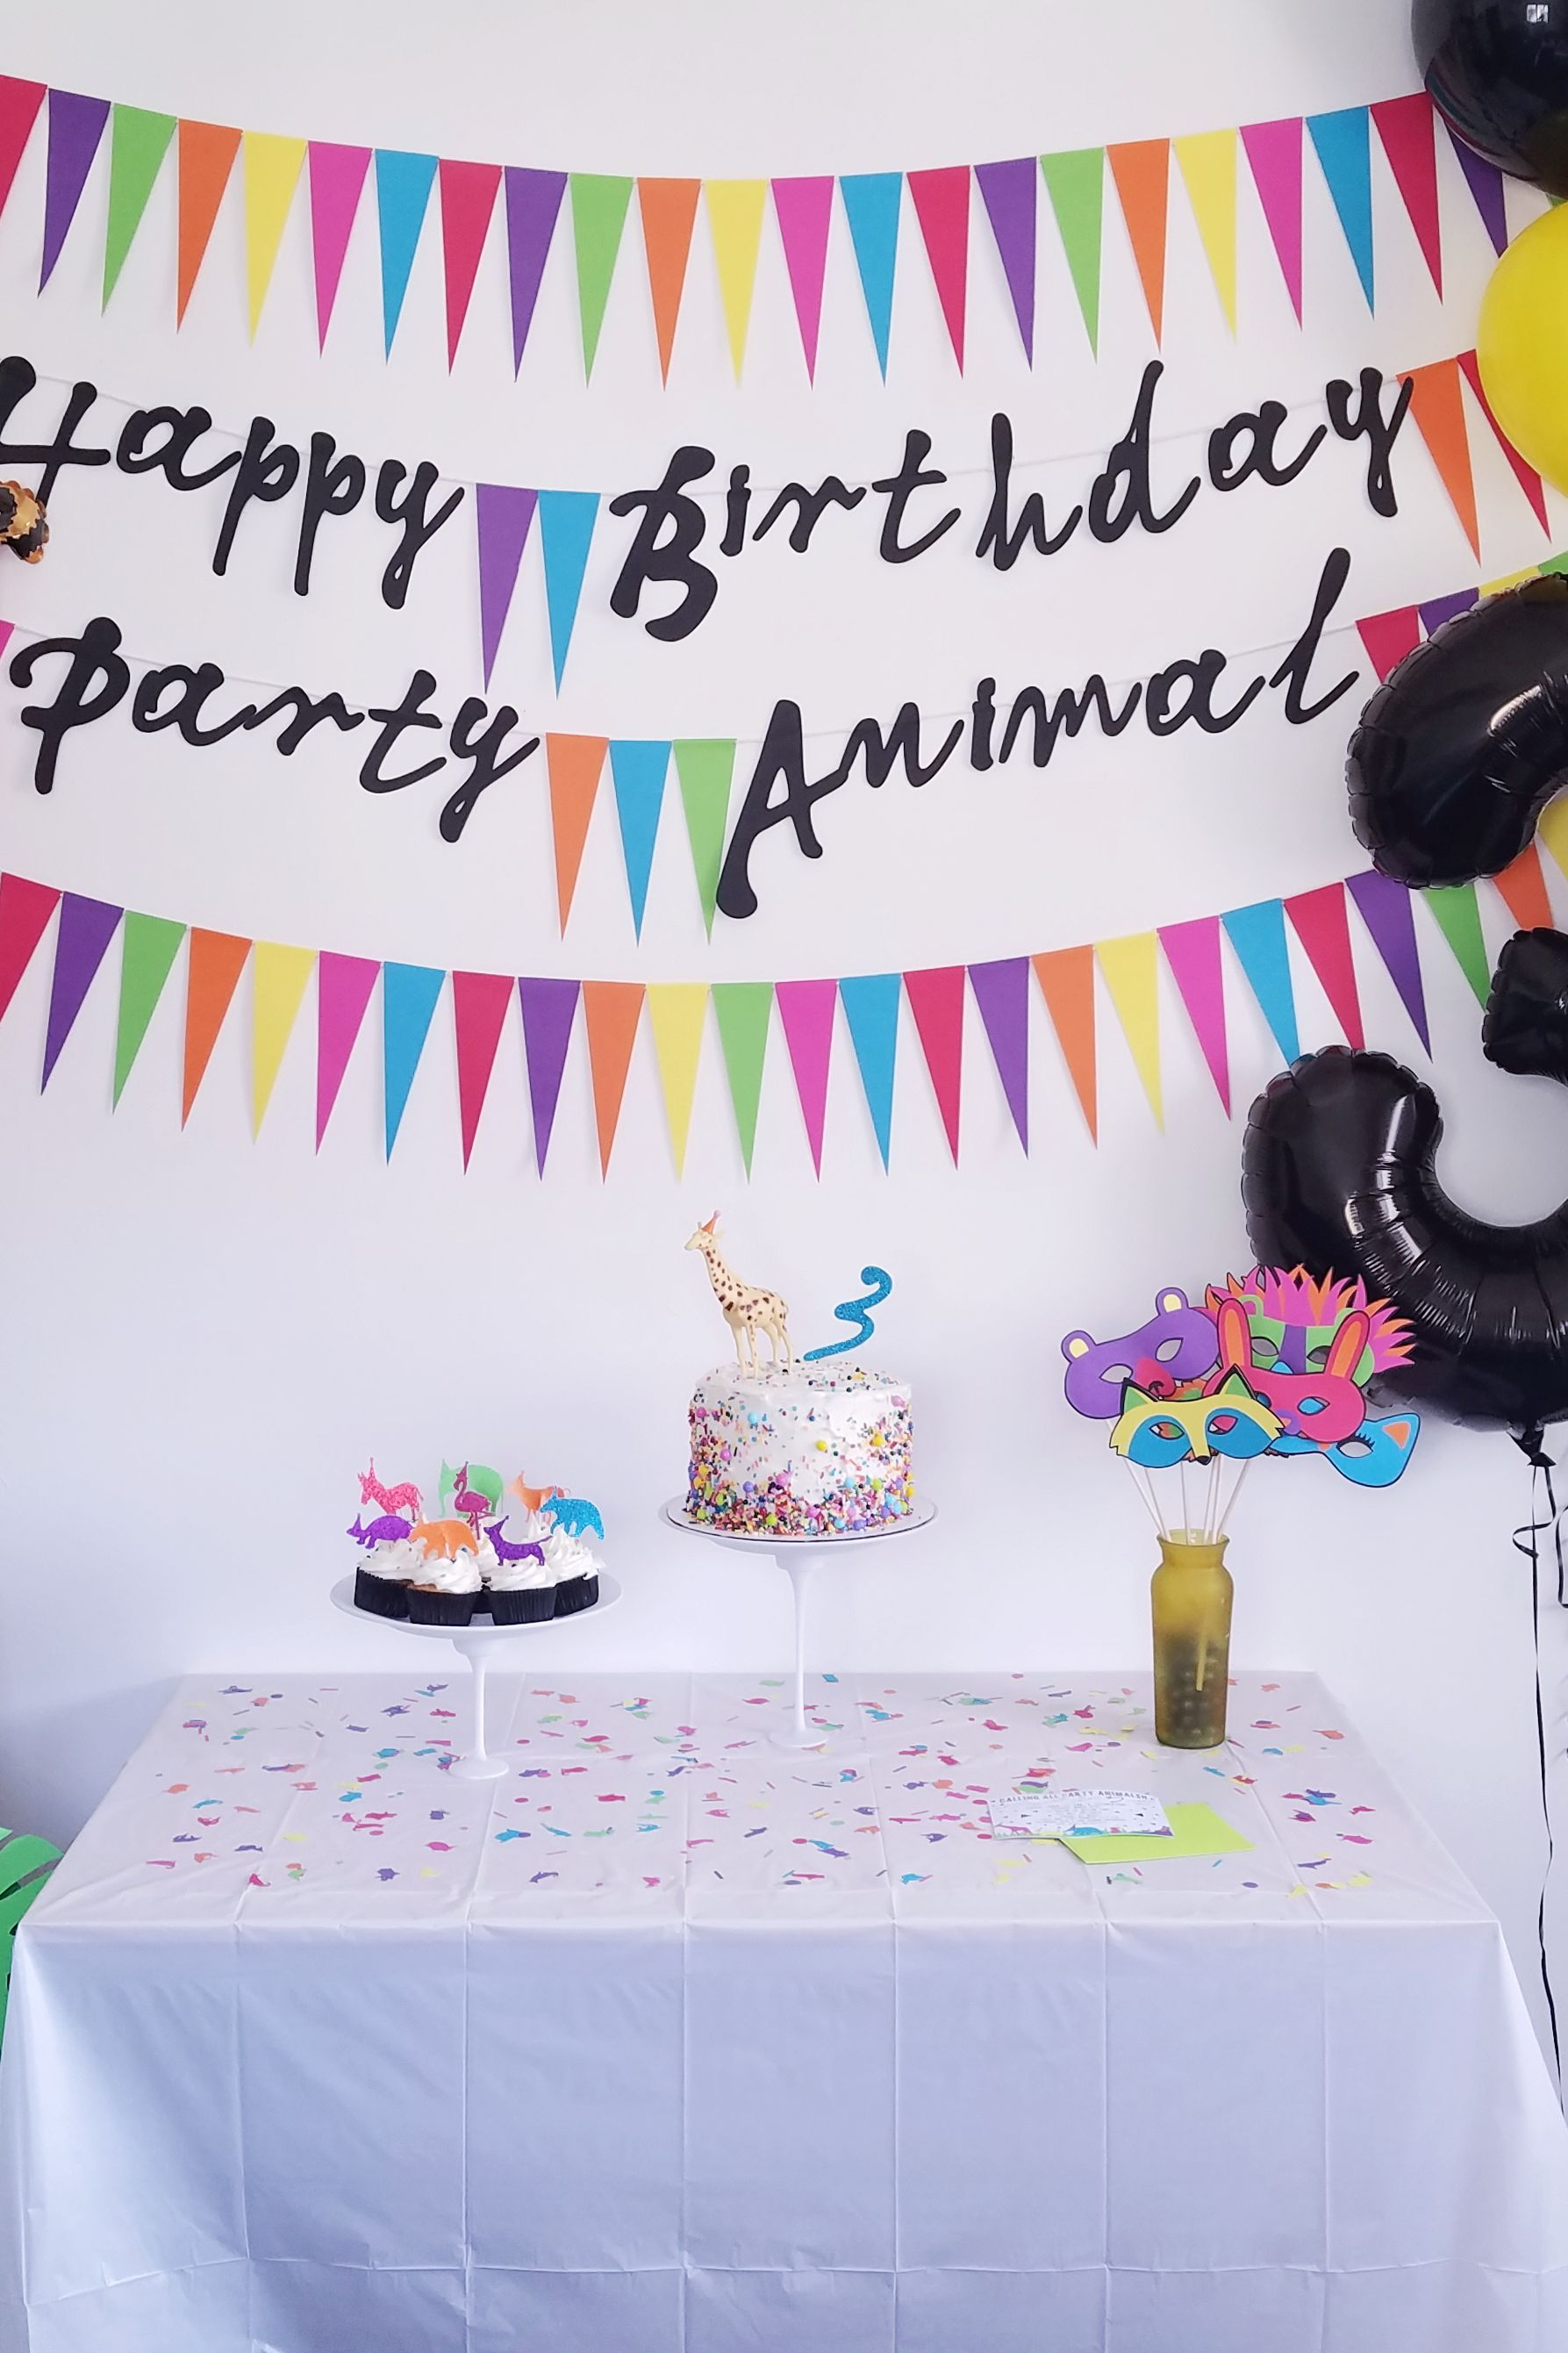 Party Animal Birthday Decorations Bundle From Rad Co Includes Banner Confetti Cupcake Toppers And Masks